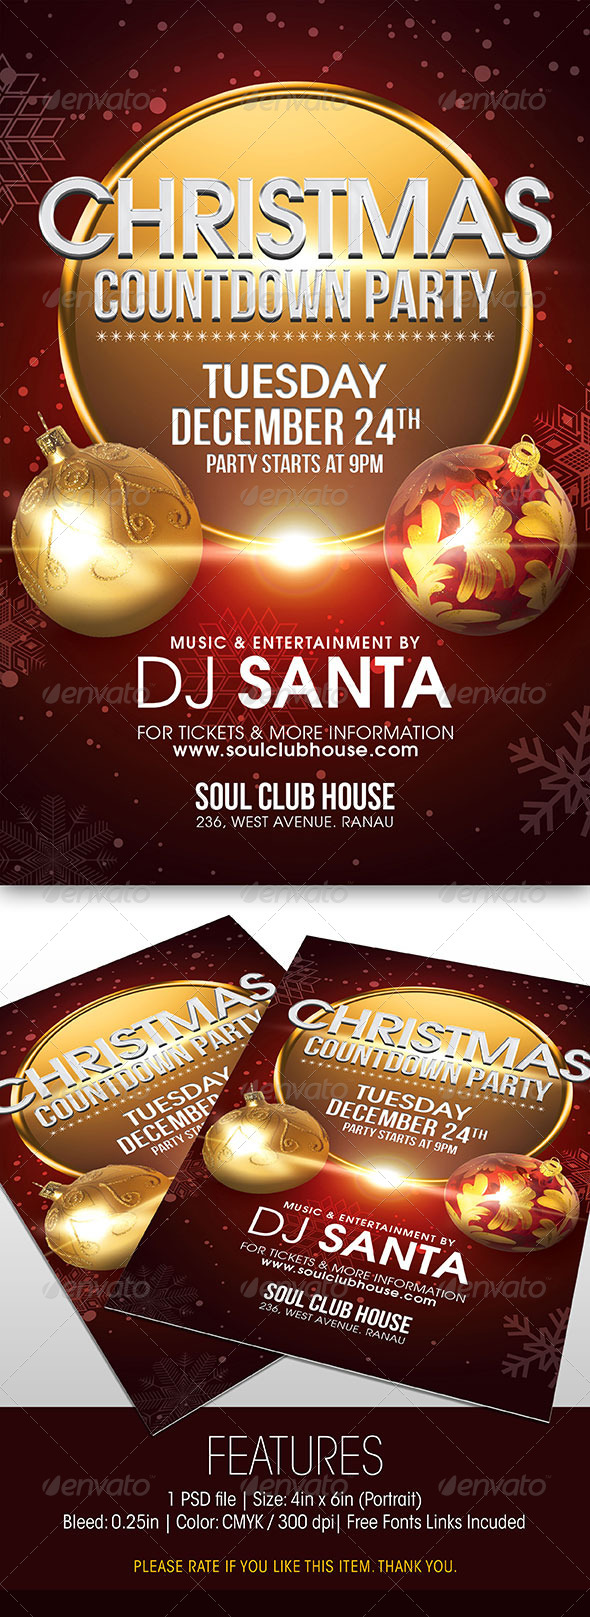 GraphicRiver Christmas Countdown Party Flyer 6022943